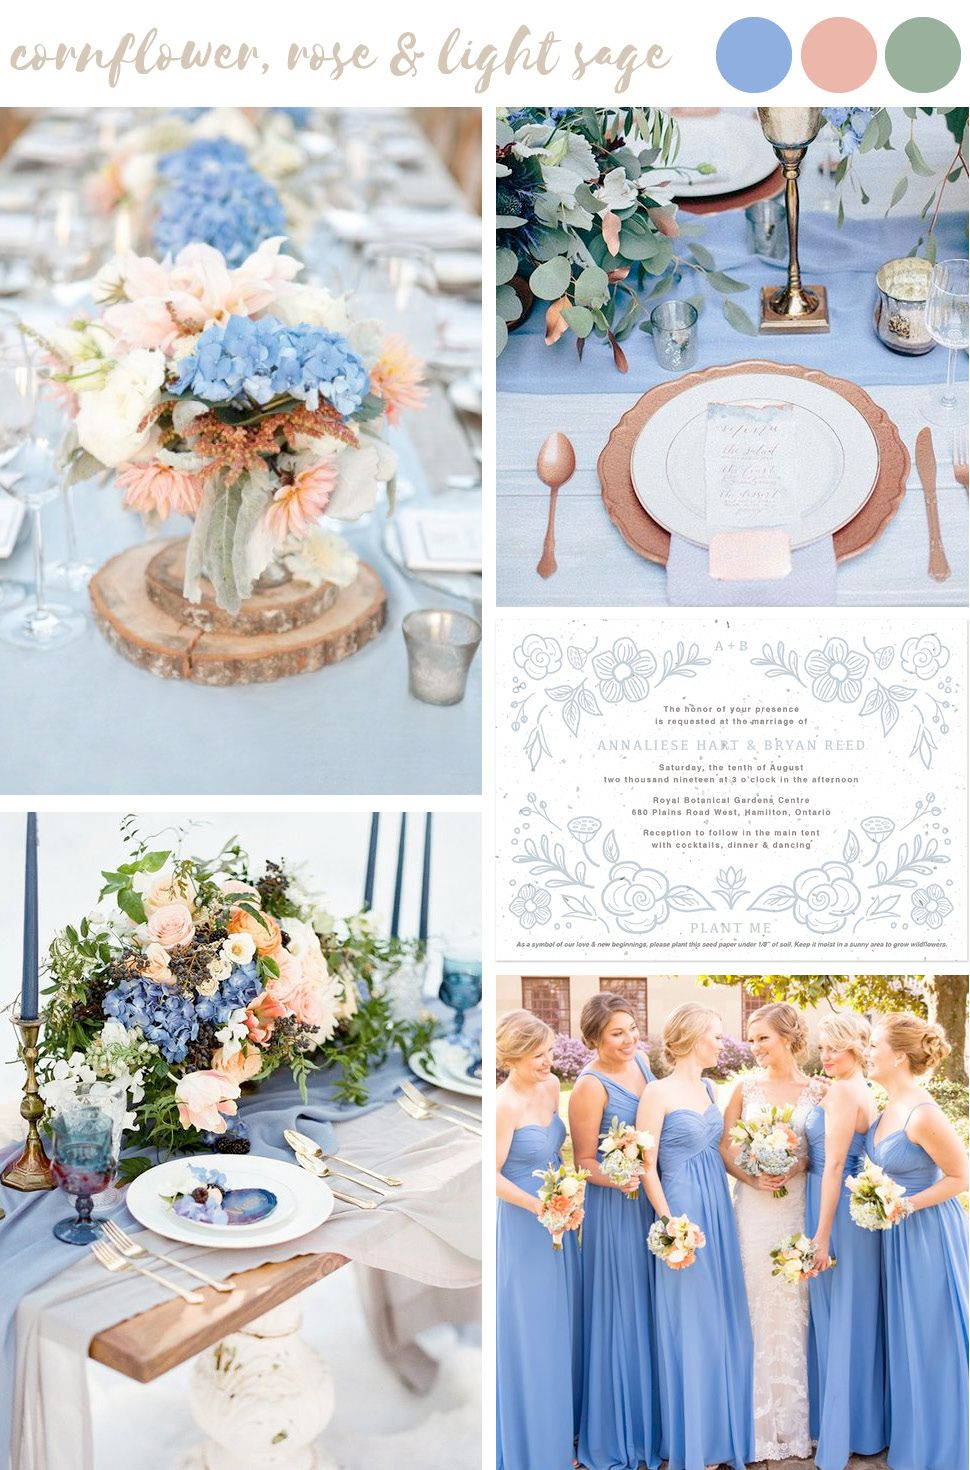 5 Stylish Summer Wedding Palettes Paired With Seed Paper Wedding ...